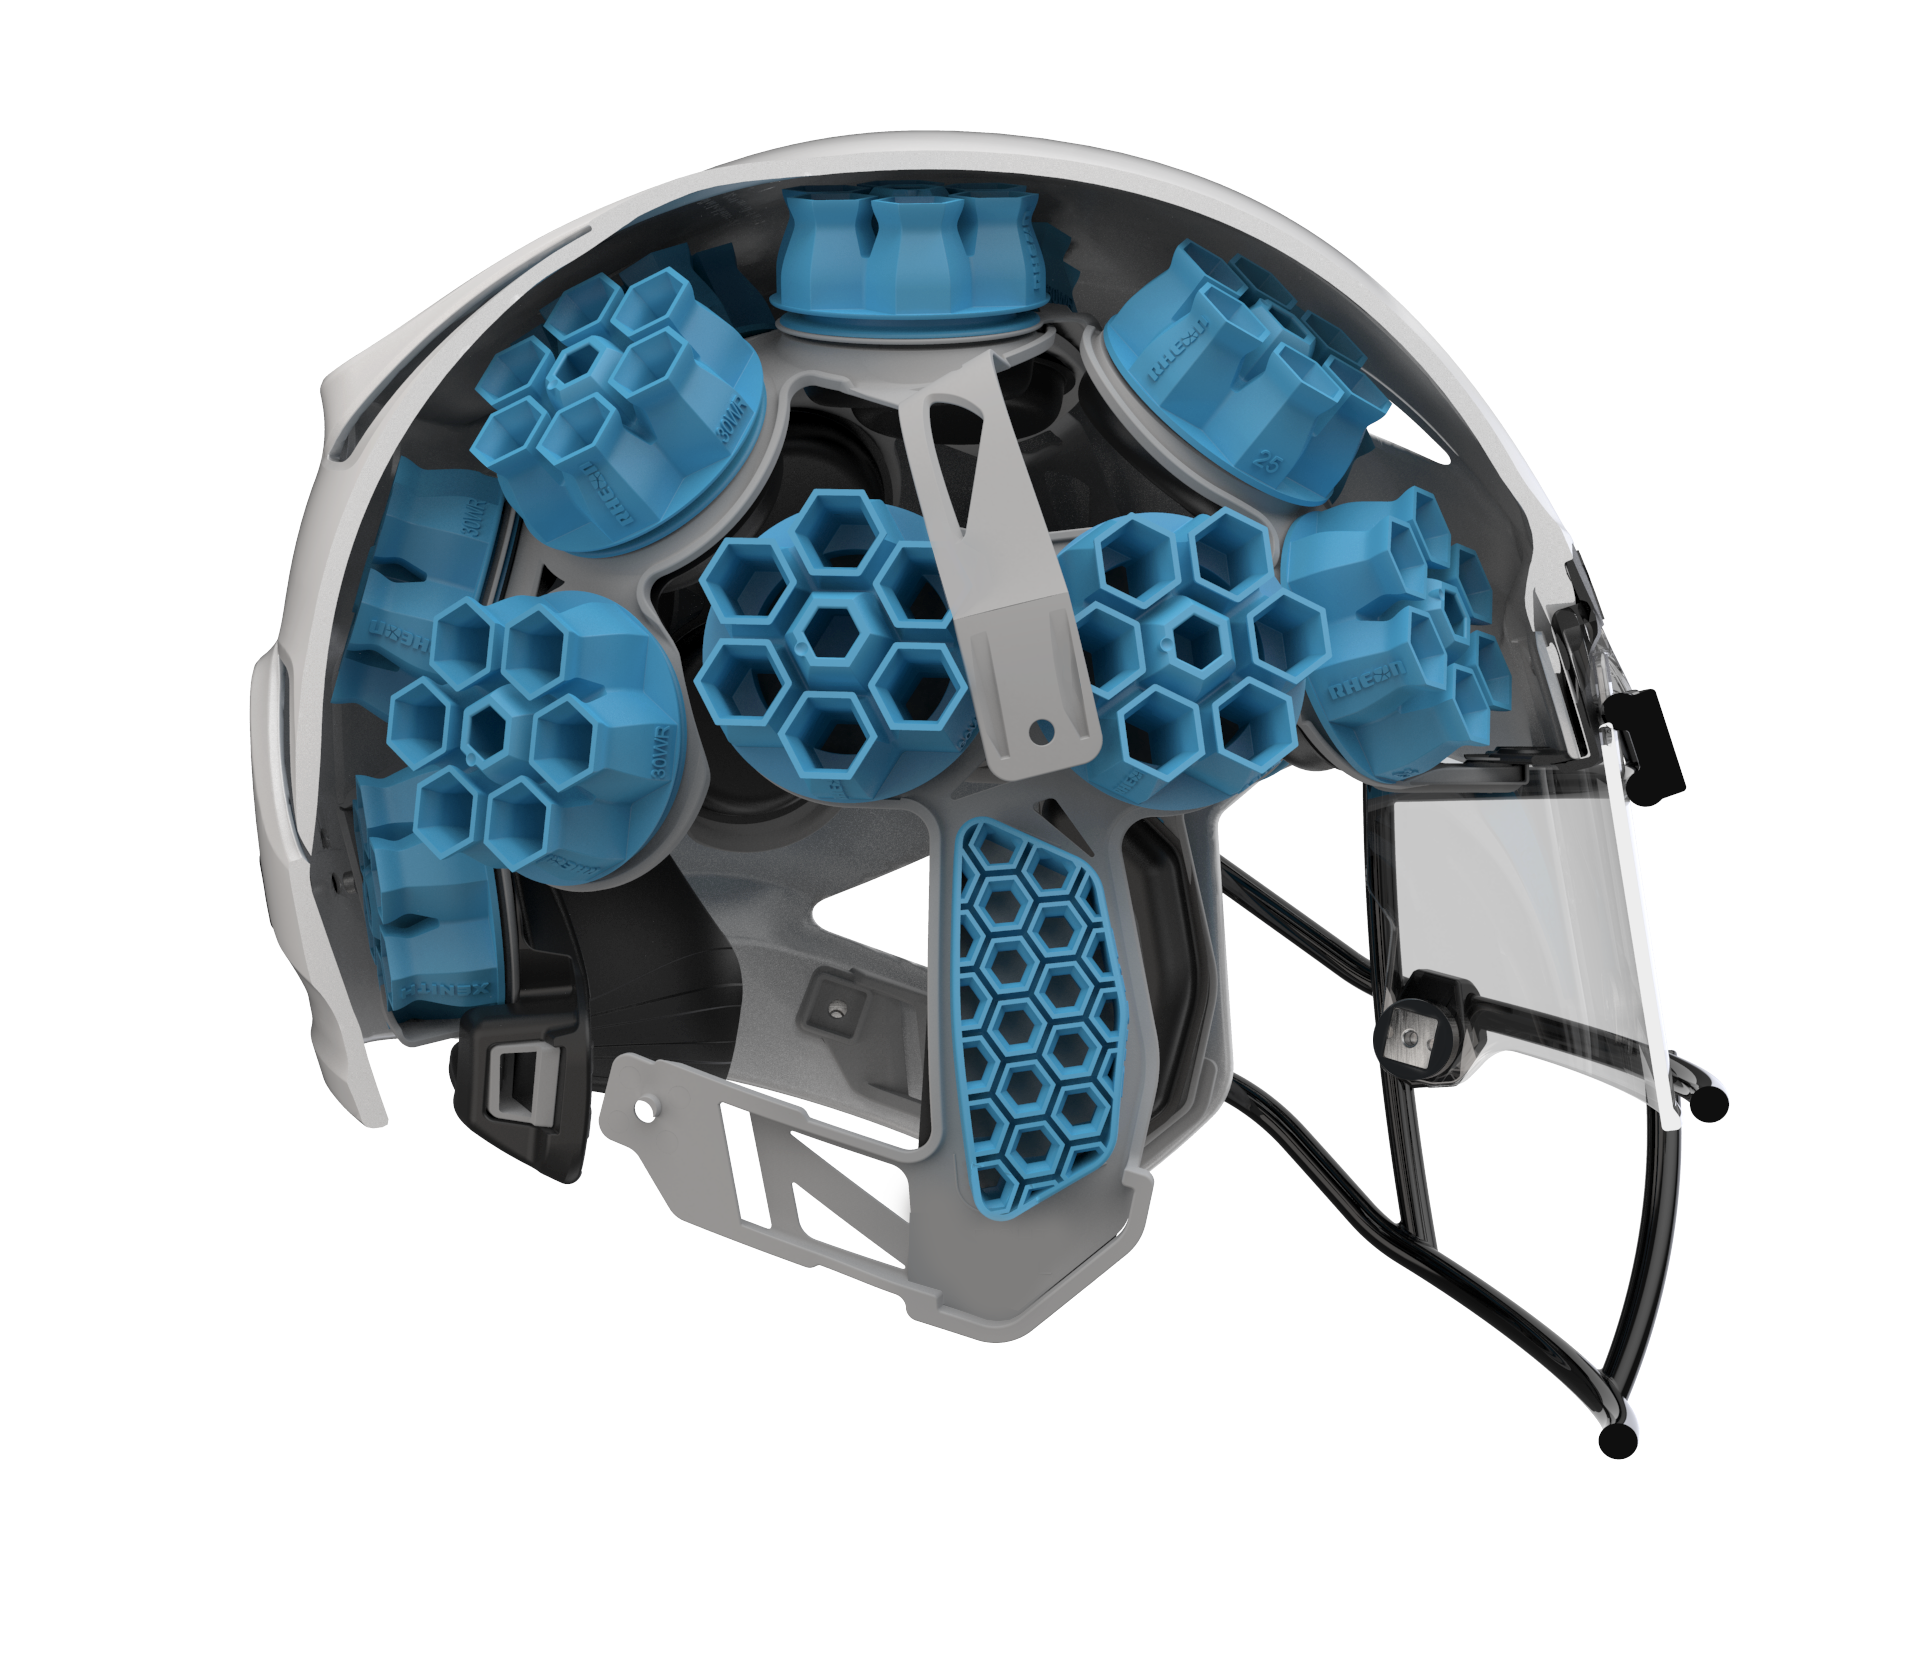 EOS and BASF 3D printed designs awarded $1.37m NFL Helmet Problem funding